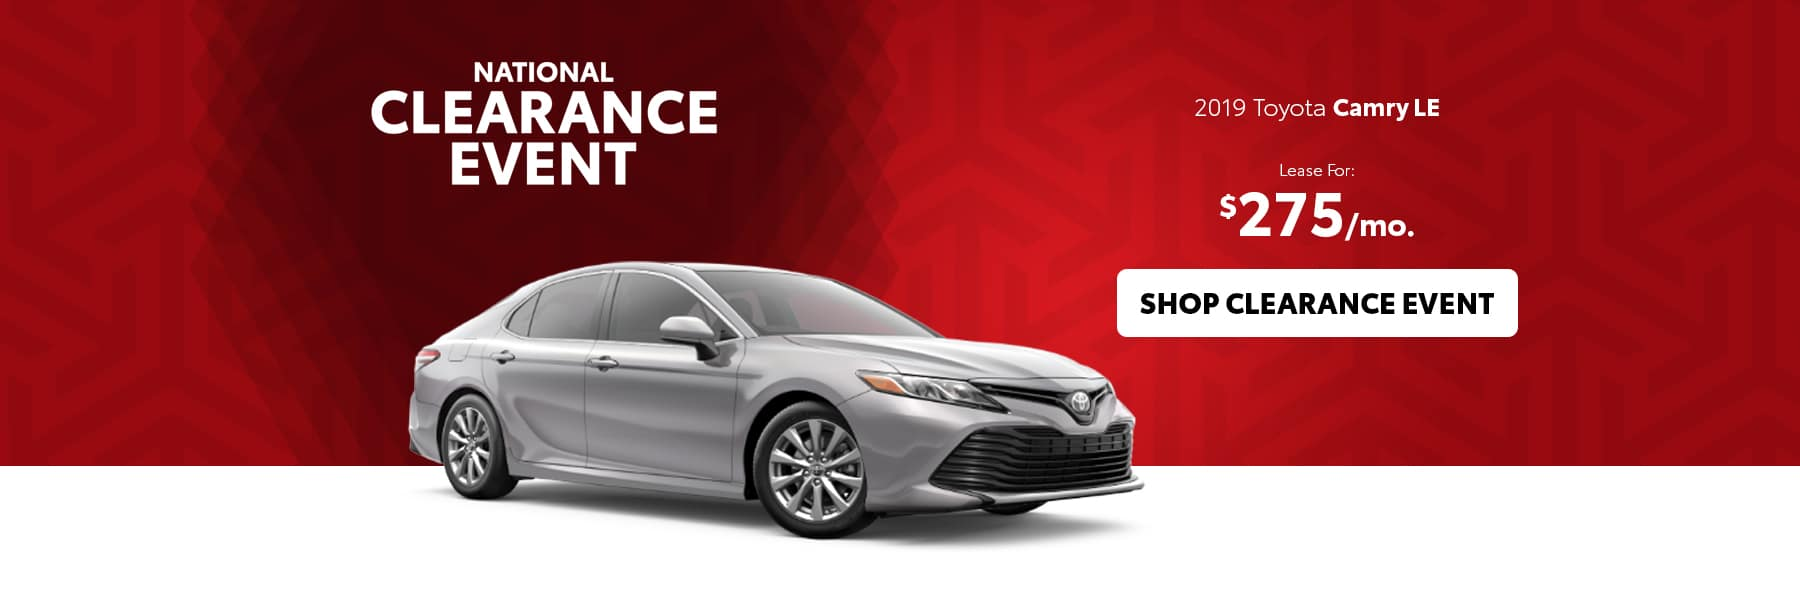 National Clearance Event Camry Offer